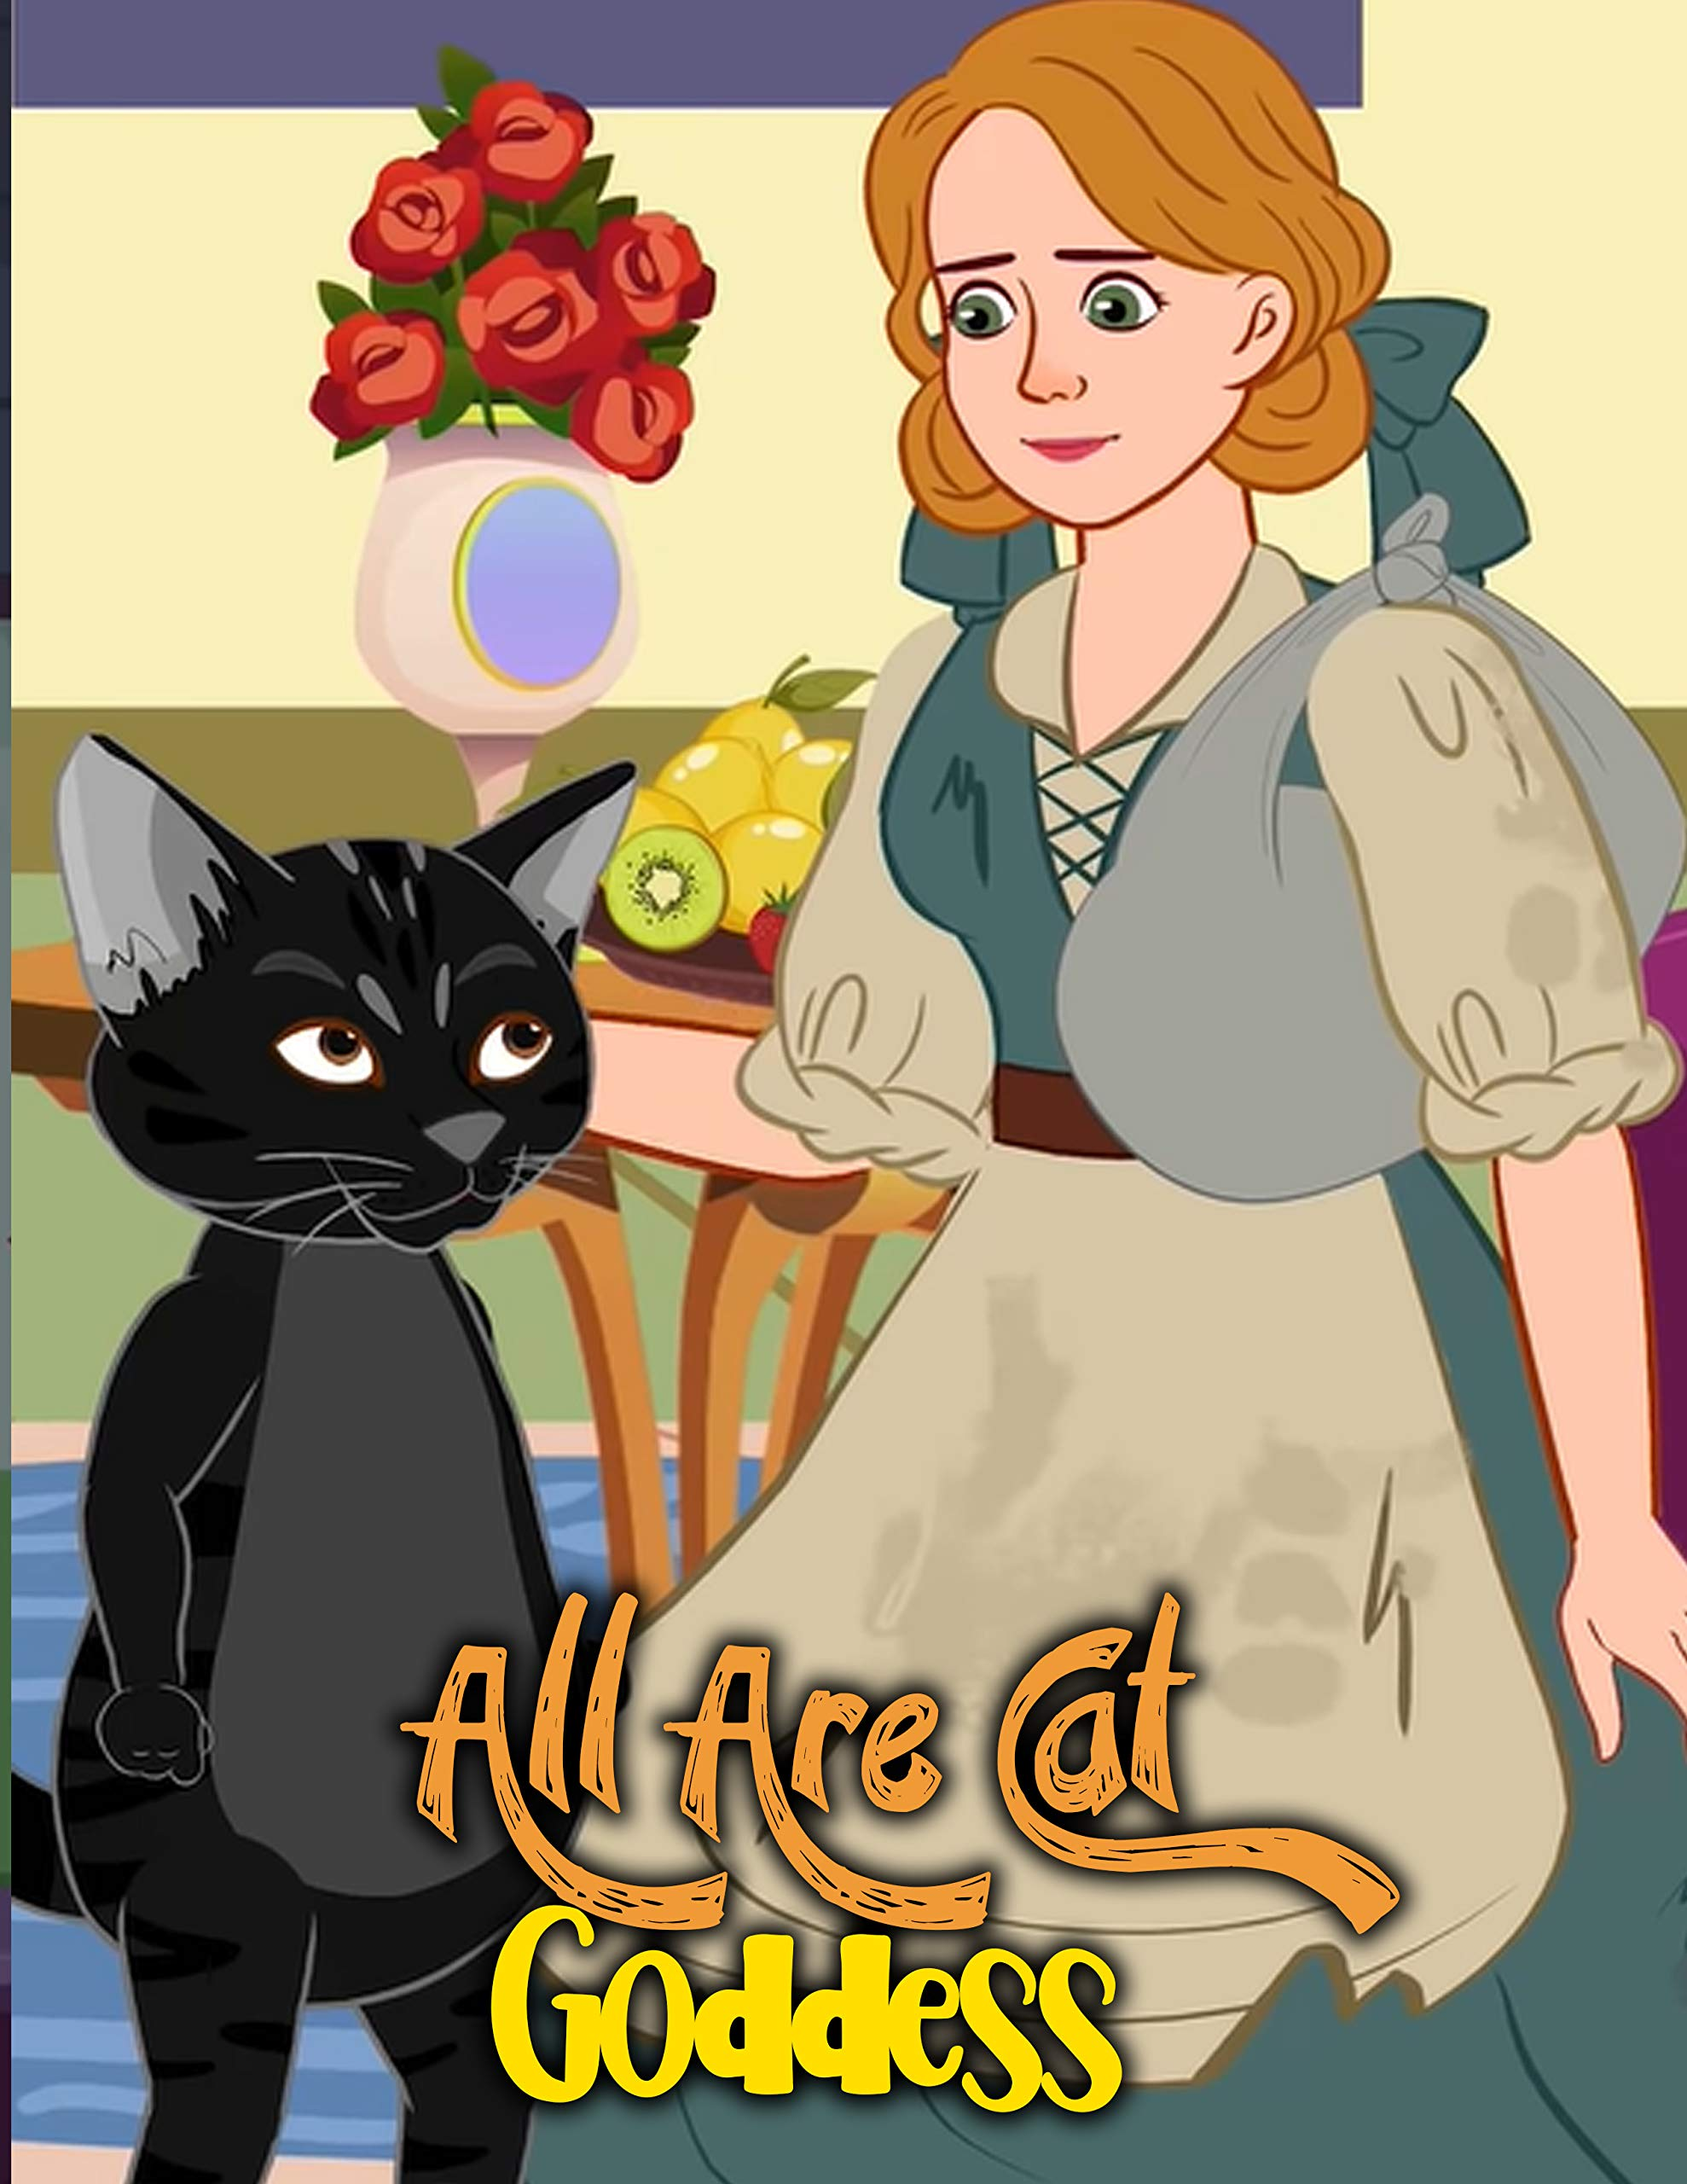 Story Of About The All Are Cat Goddess: Bedtime Stories For Kids | Classic Story For Children in English | Fairy Tale For Kids